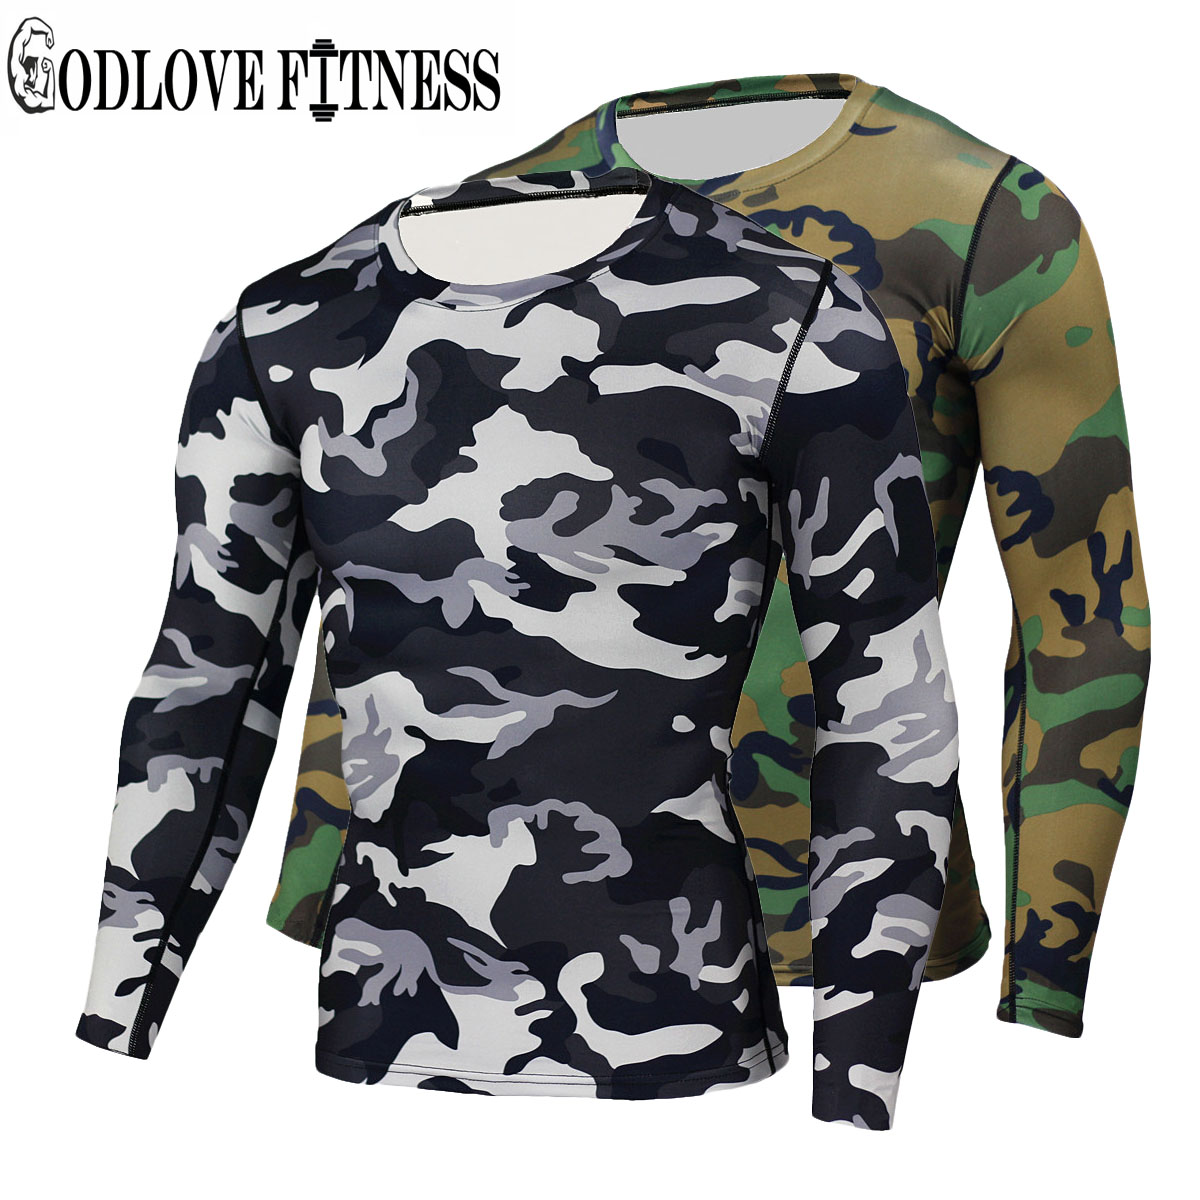 Design t shirt rollerblade - New High Quality Camouflage Military Compression T Shirt Tights Fitness Men Quick Dry Camo Long Sleeve